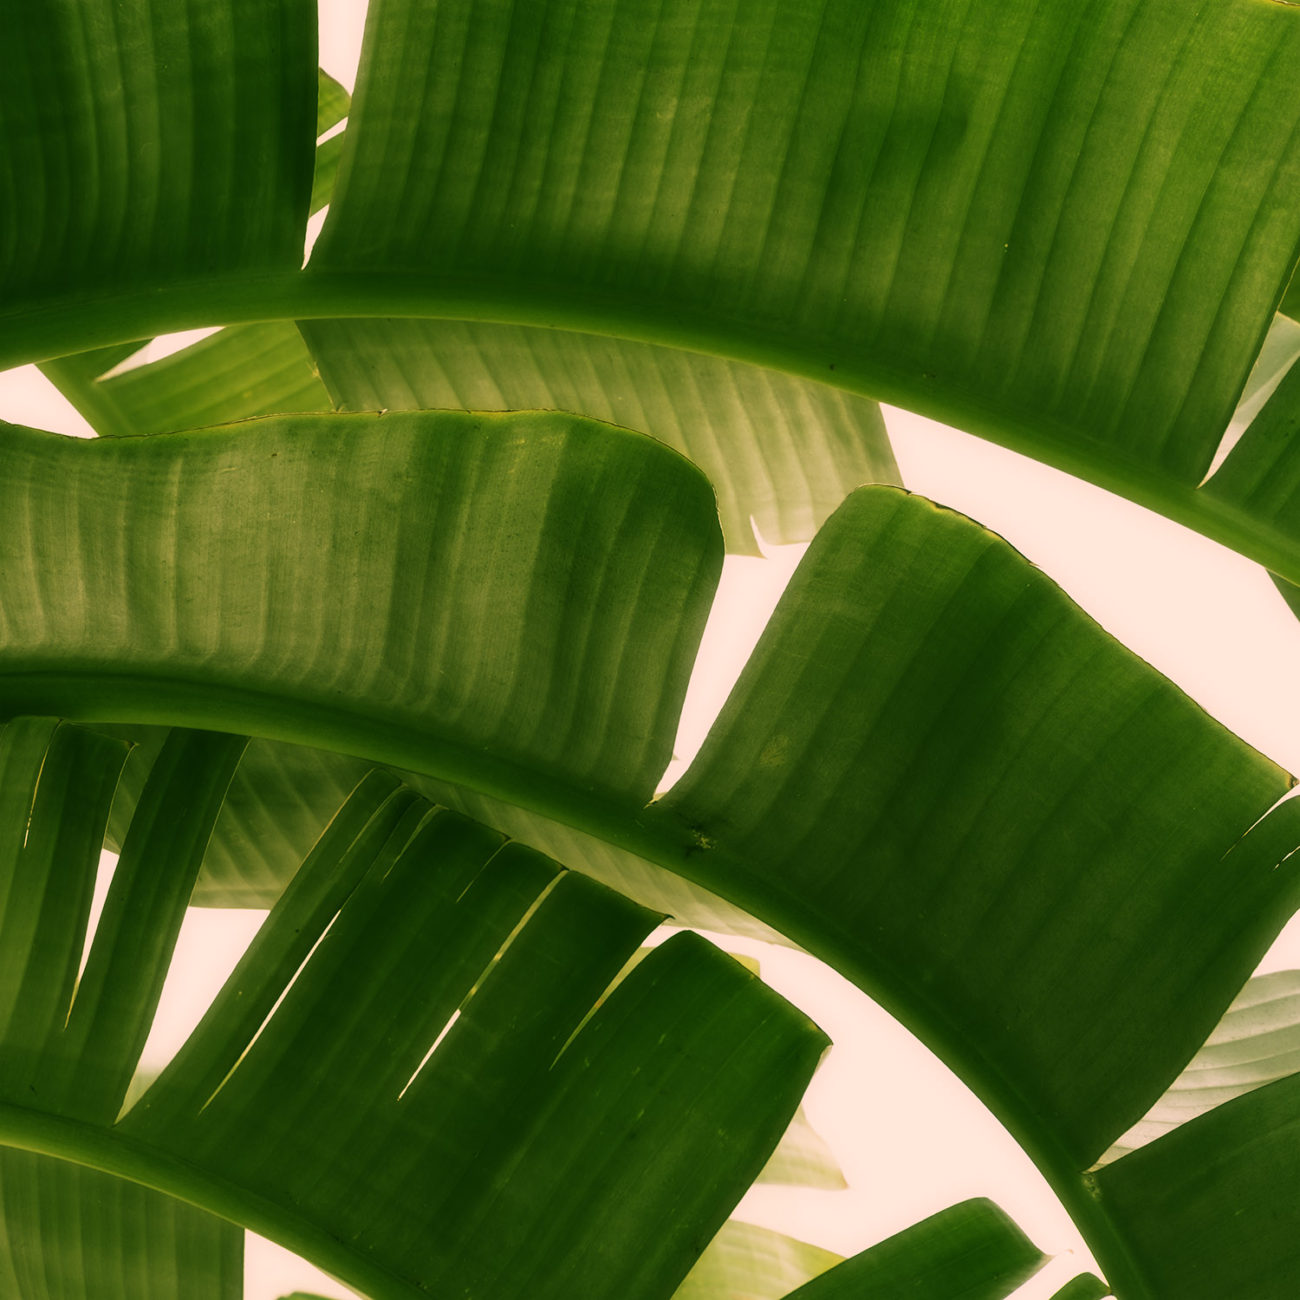 Banana leaves, Study II, Boca Raton, 2017